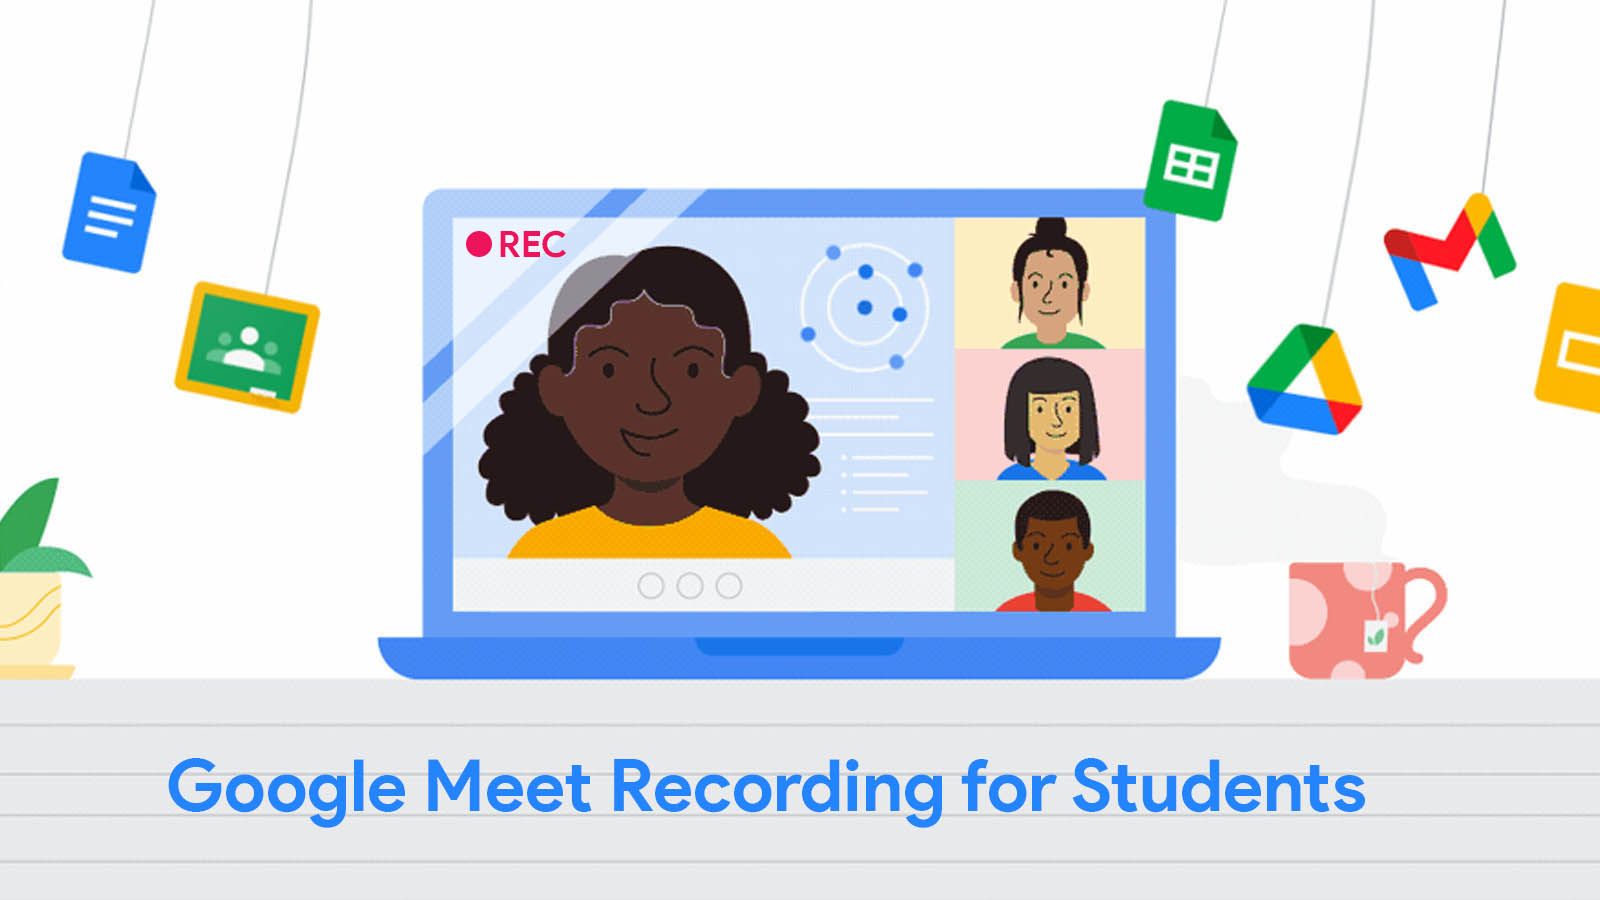 Students will soon be able to record and look back on their virtual school day via Google Meet